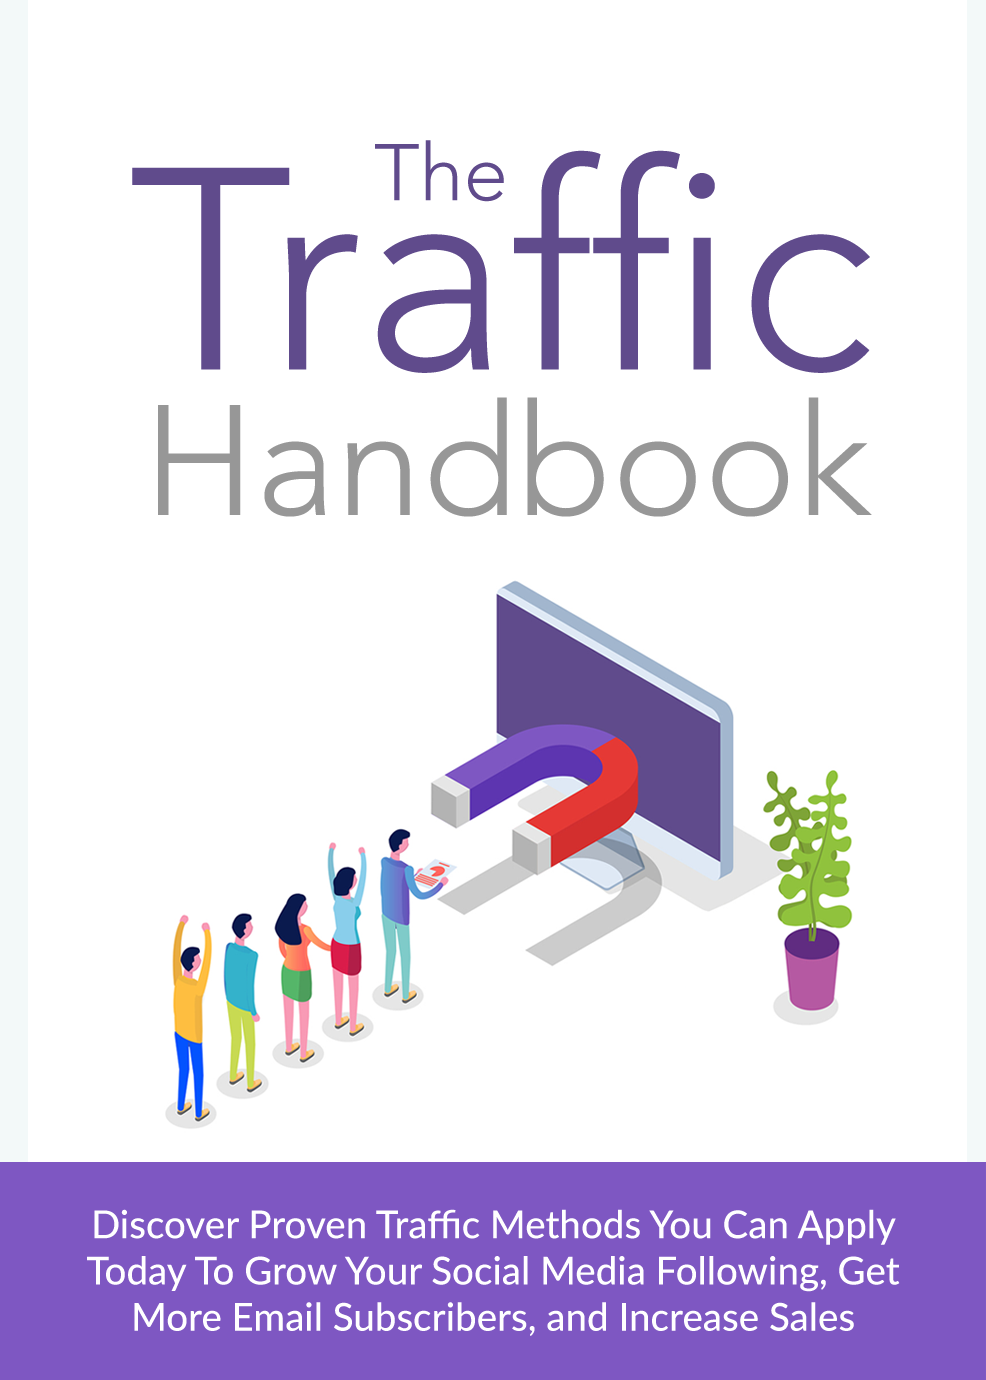 The Traffic Handbook (Discover Proven Traffic Methods You Can Apply Today To Grow Your Social Media Following, Get More Email Subscribers, And Increase Sales) Ebook's Ebook Image